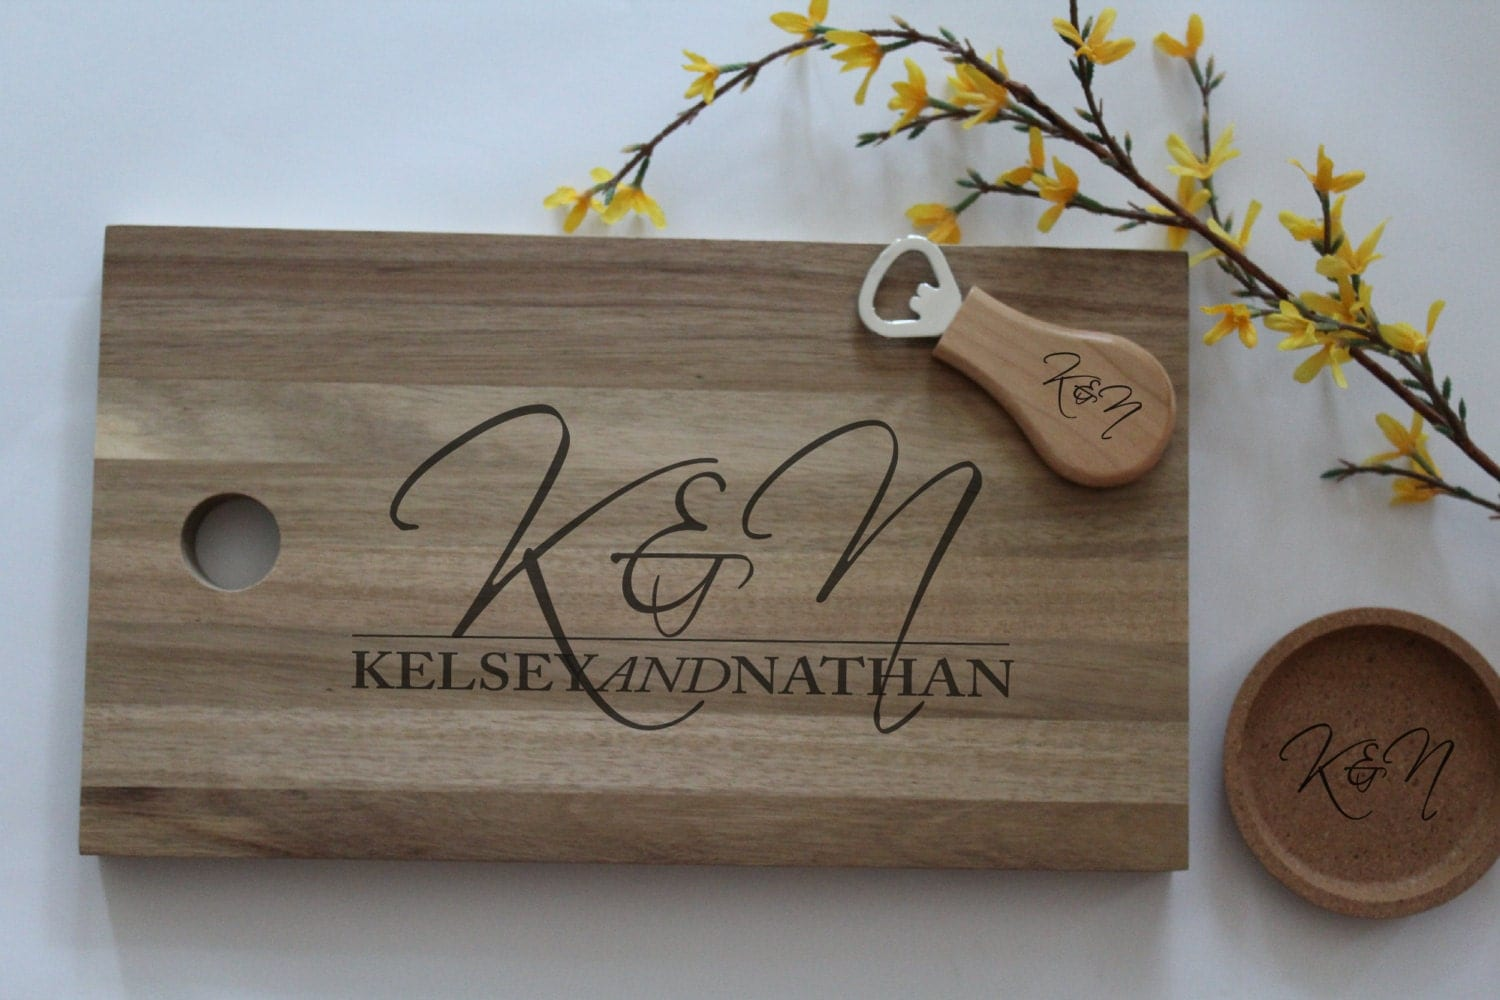 personalized kitchen accessories personalized kitchen accessories personalized outdoor 1471